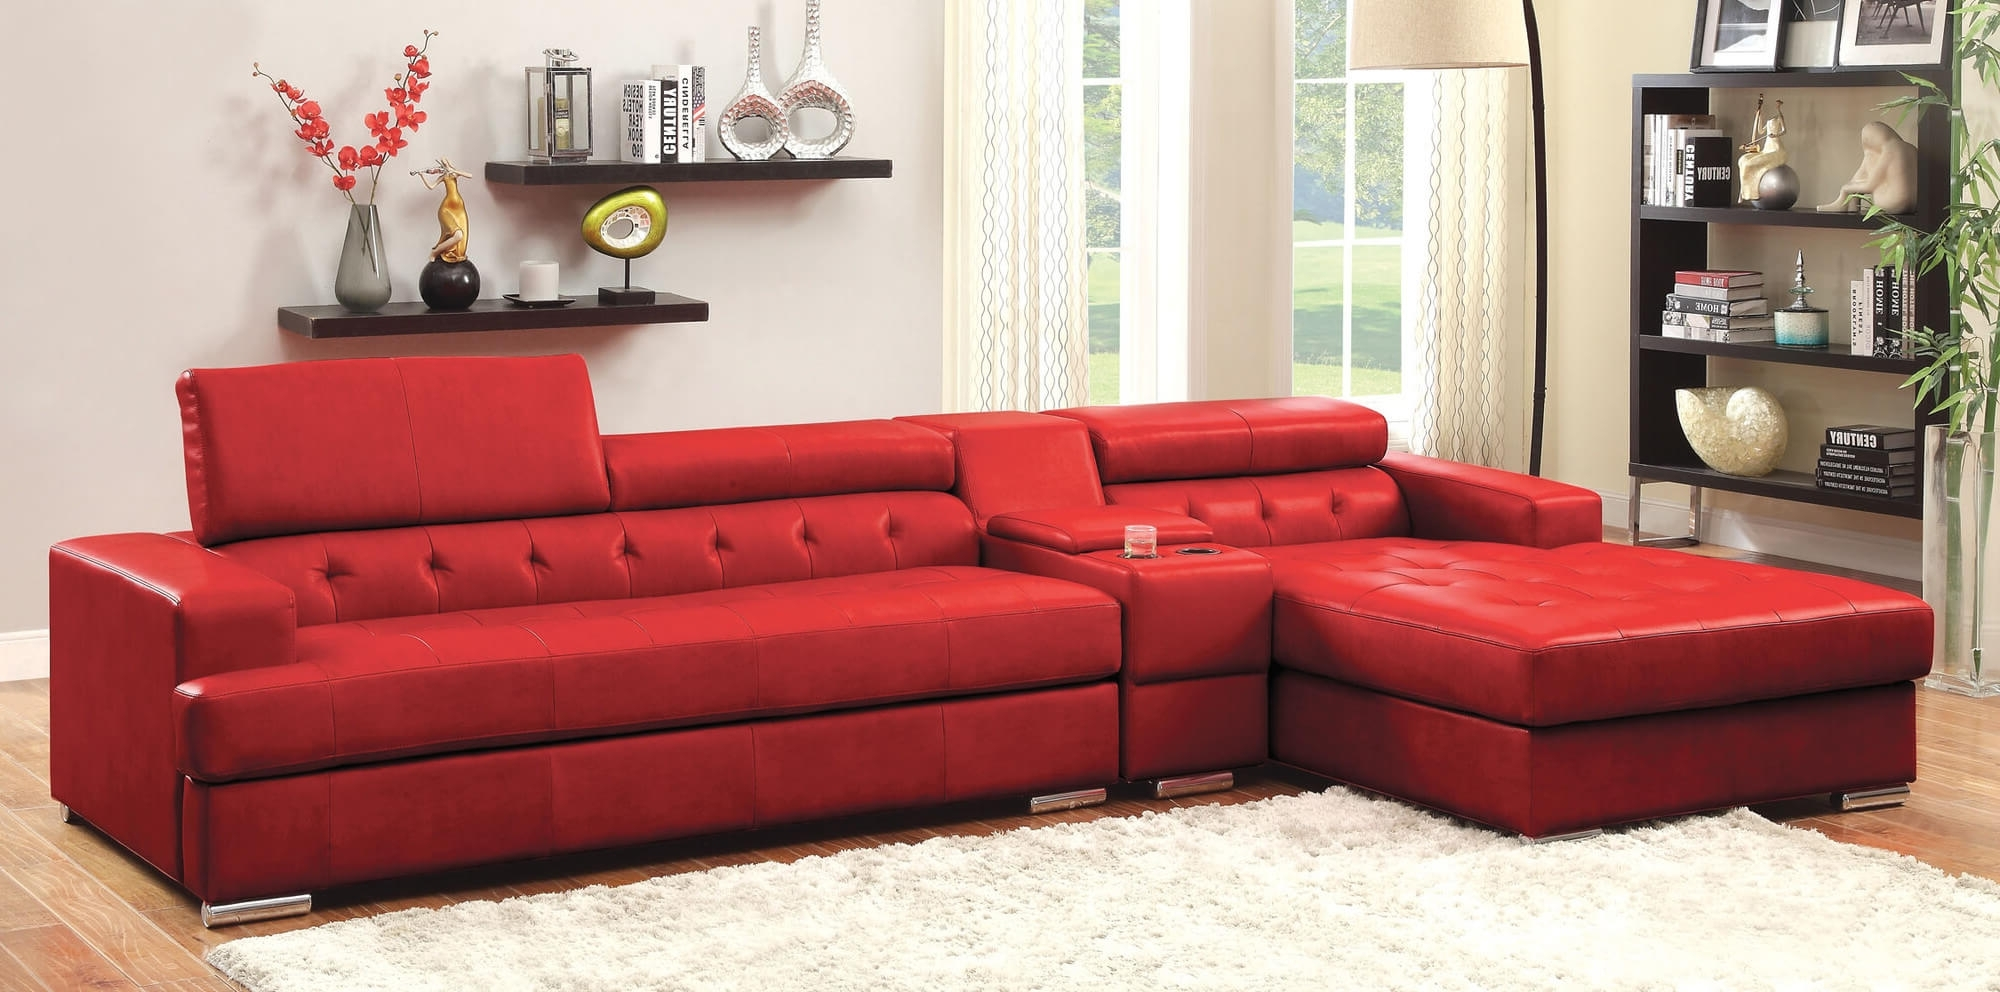 Red Sectional Sofas With Chaise With Most Recent Sectional Sofa Design: Wonderful Red Sectional Sofa With Chaise (View 11 of 15)